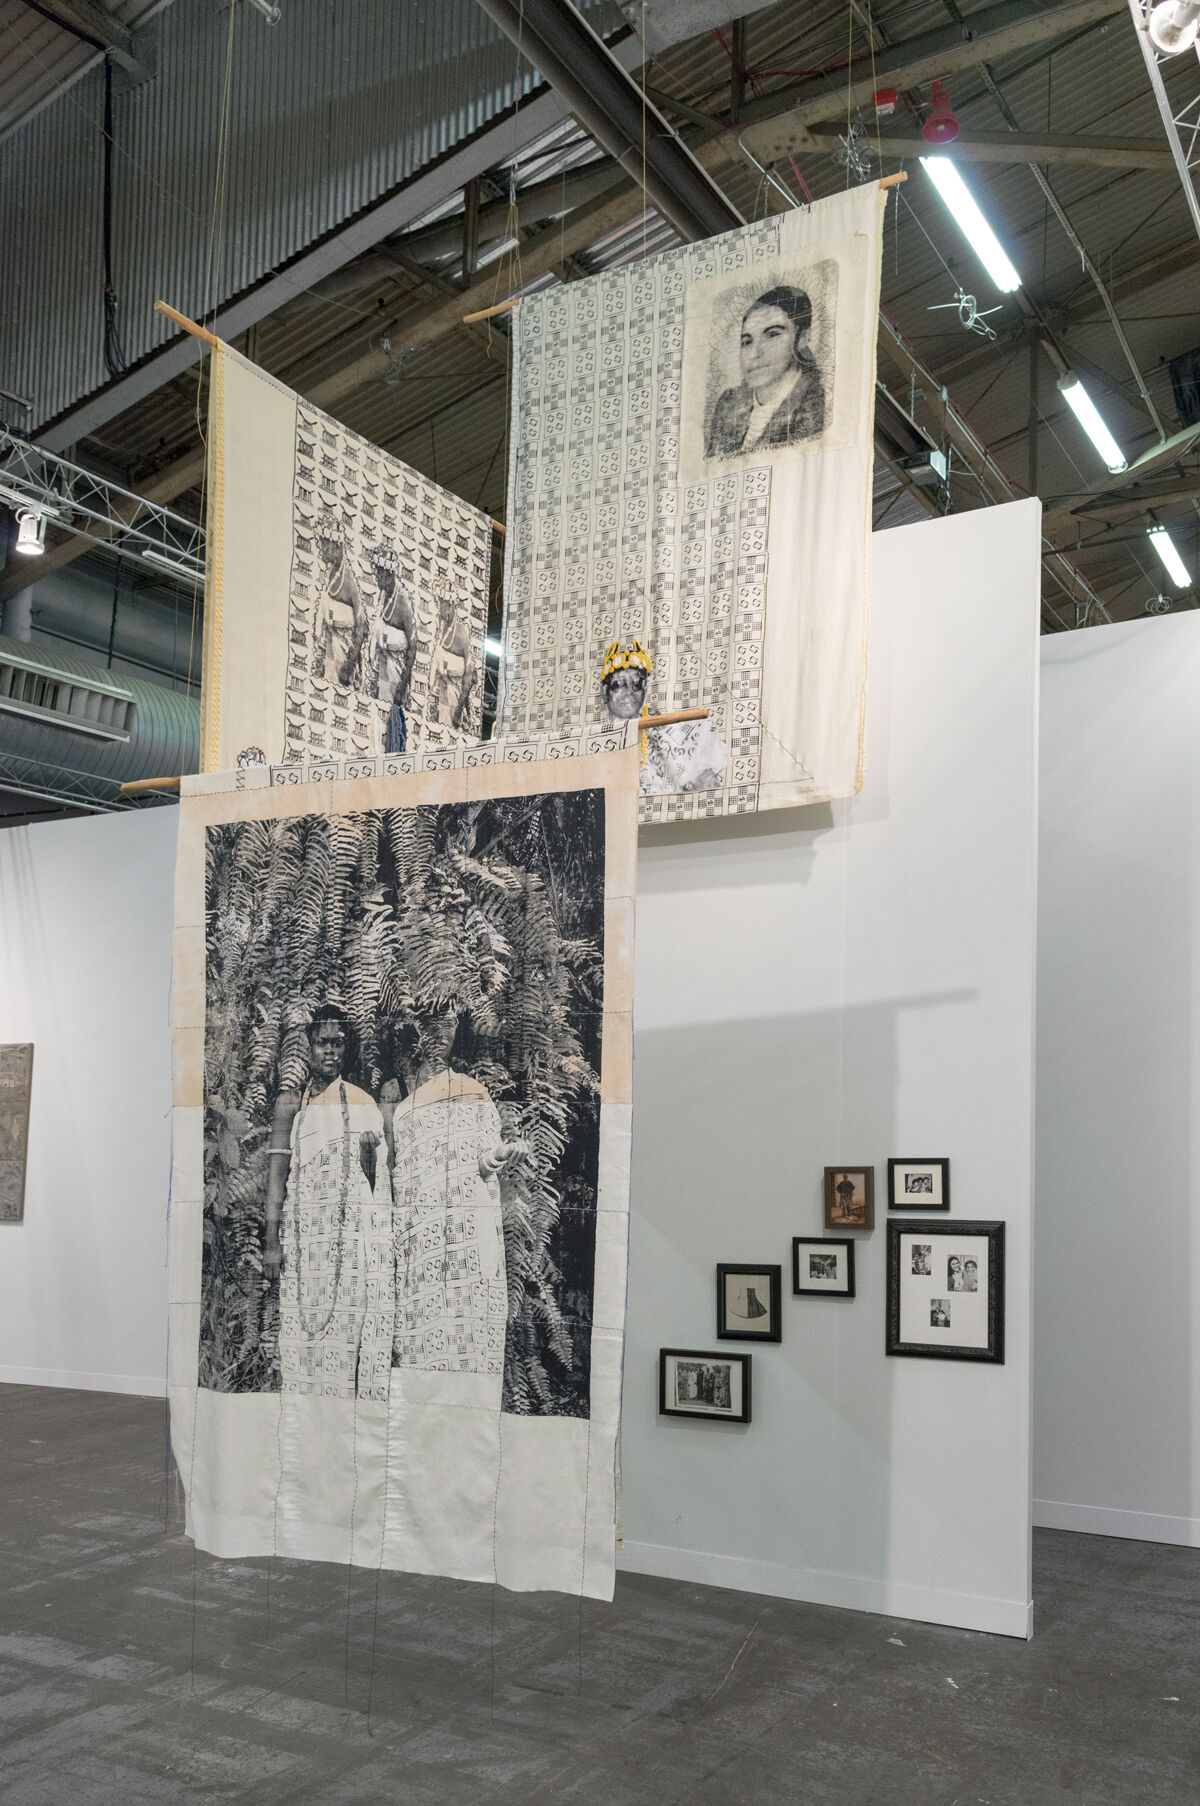 Installation view of work by Zohra Opoku at Mariane Ibrahim Gallery's booth at The Armory Show, 2017. Photo by Adam Reich for Artsy.